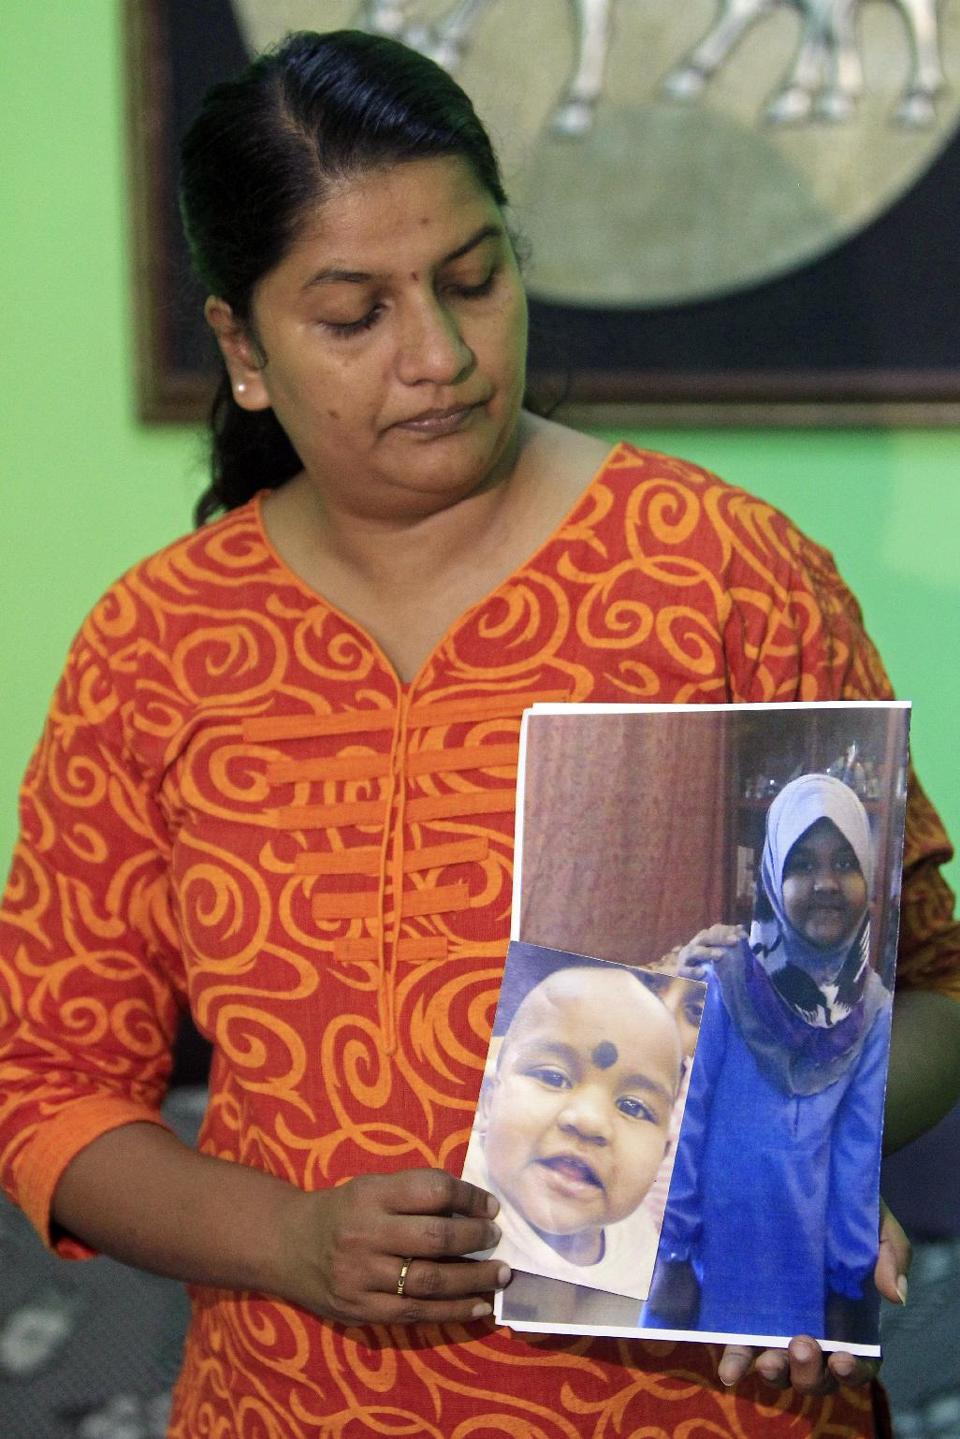 In this 16 October 2014 photo, M. Indira Gandhi shows photos of her youngest daughter Prasana Diksa during an interview at her house in Ipoh